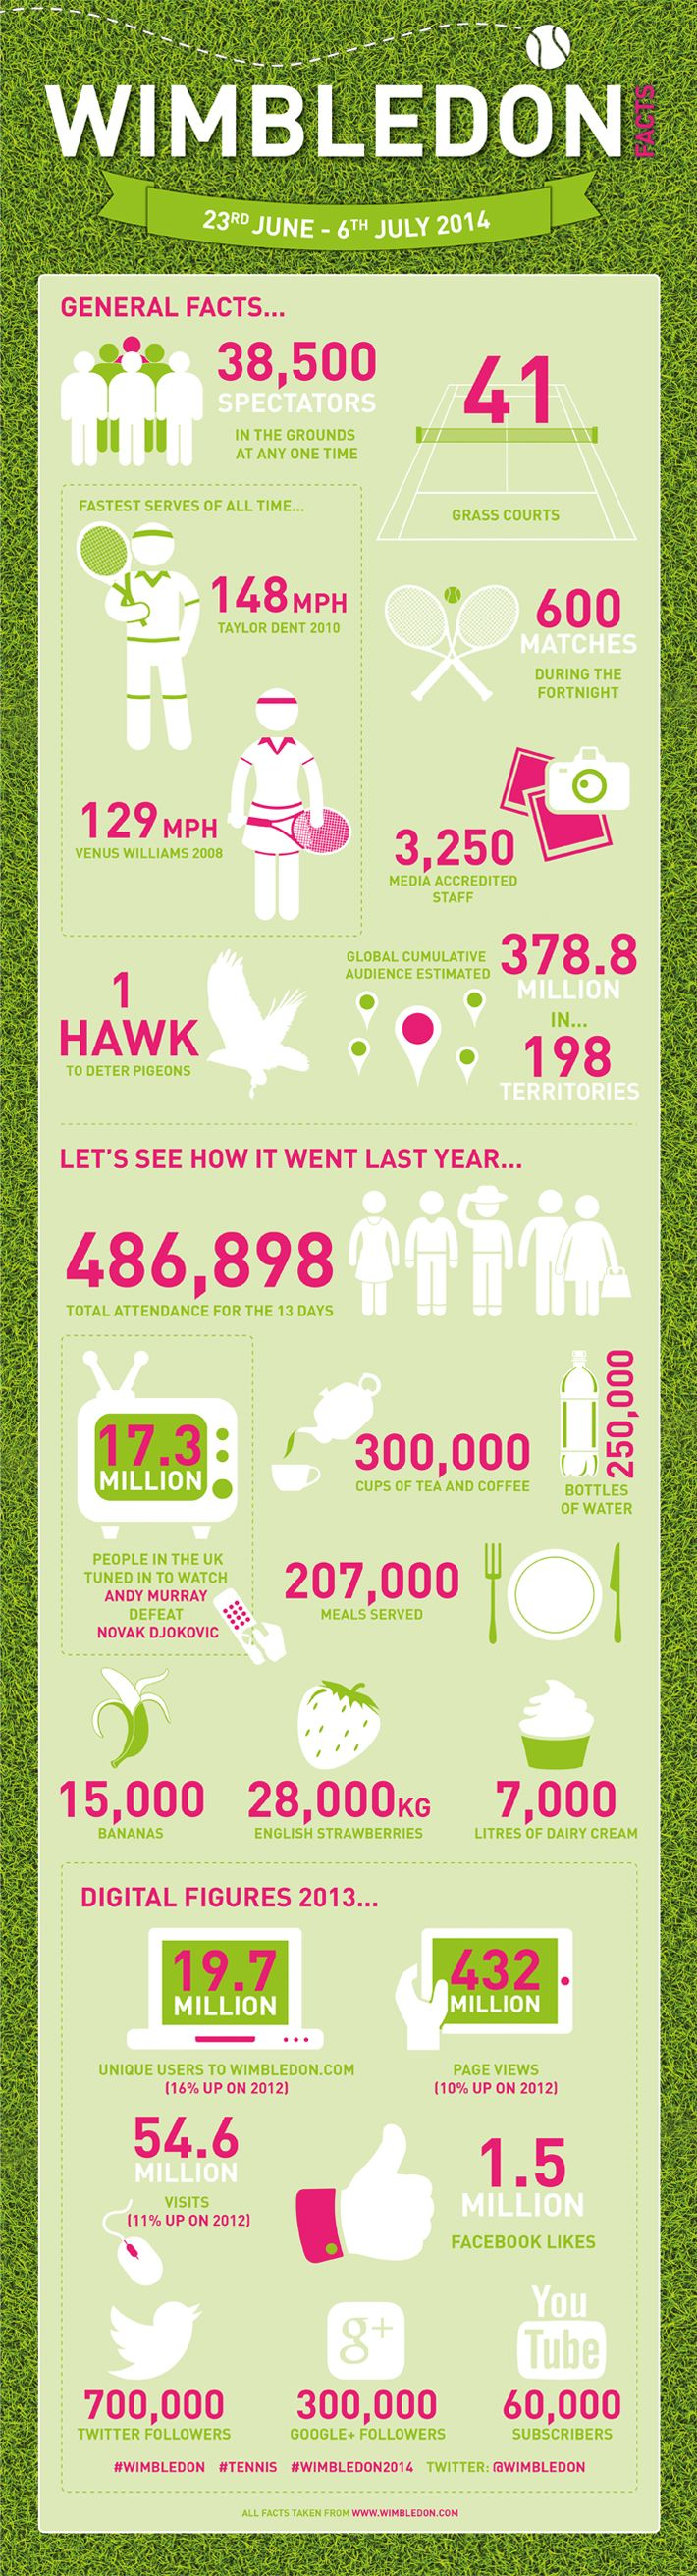 Being a design agency we couldn't resist the opportunity of creating this cool #infographic to showcase the facts and figures of #Wimbledon2014, we especially like the fact about Rufus the Hawk!